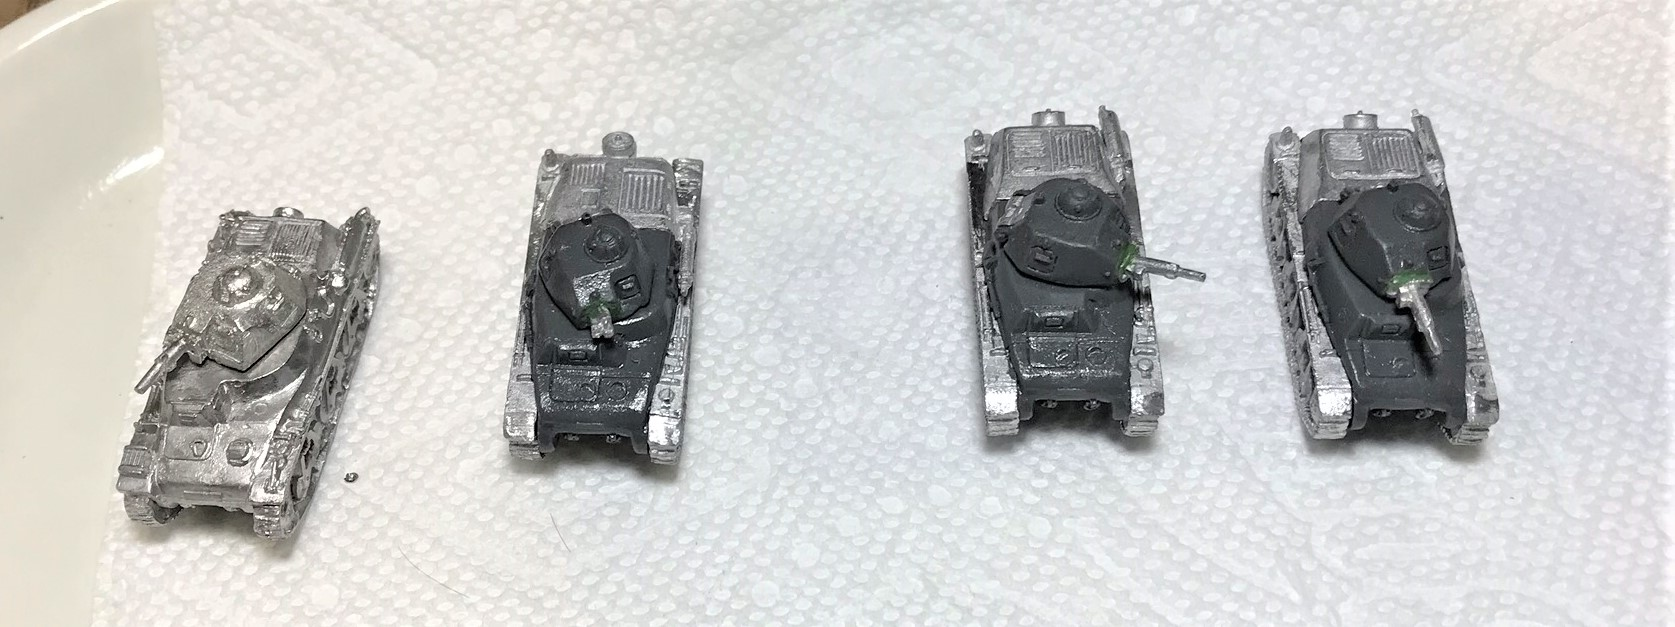 2 Hotchkiss tanks assembled